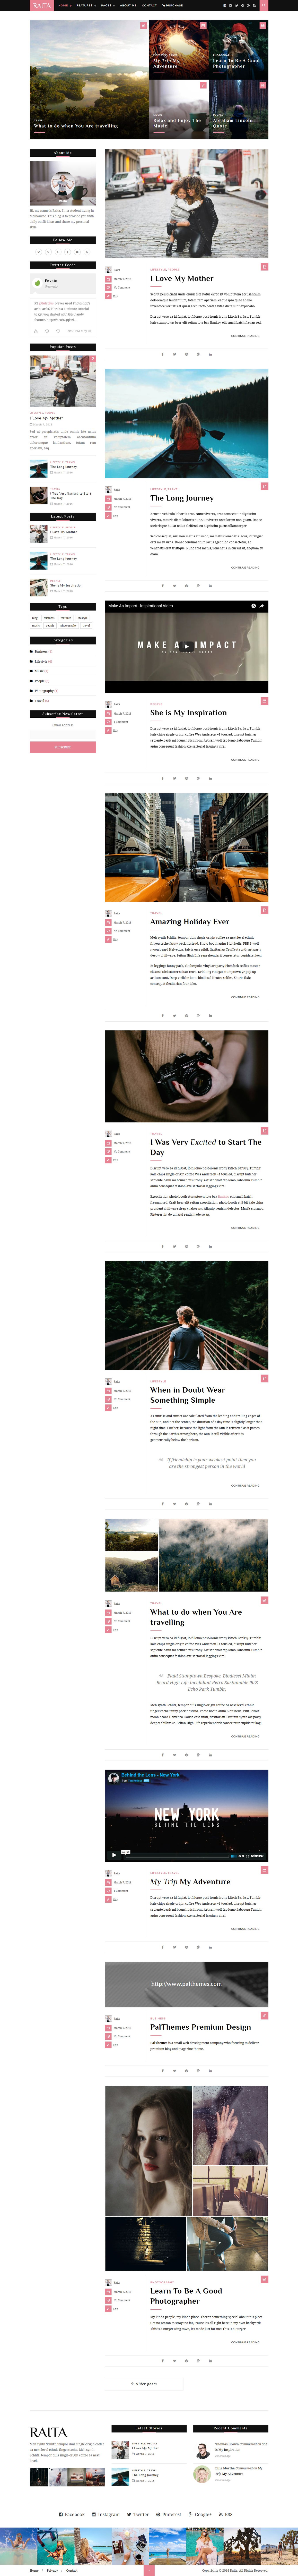 Raita - Minimal WordPress Theme For Writers Screenshot 1